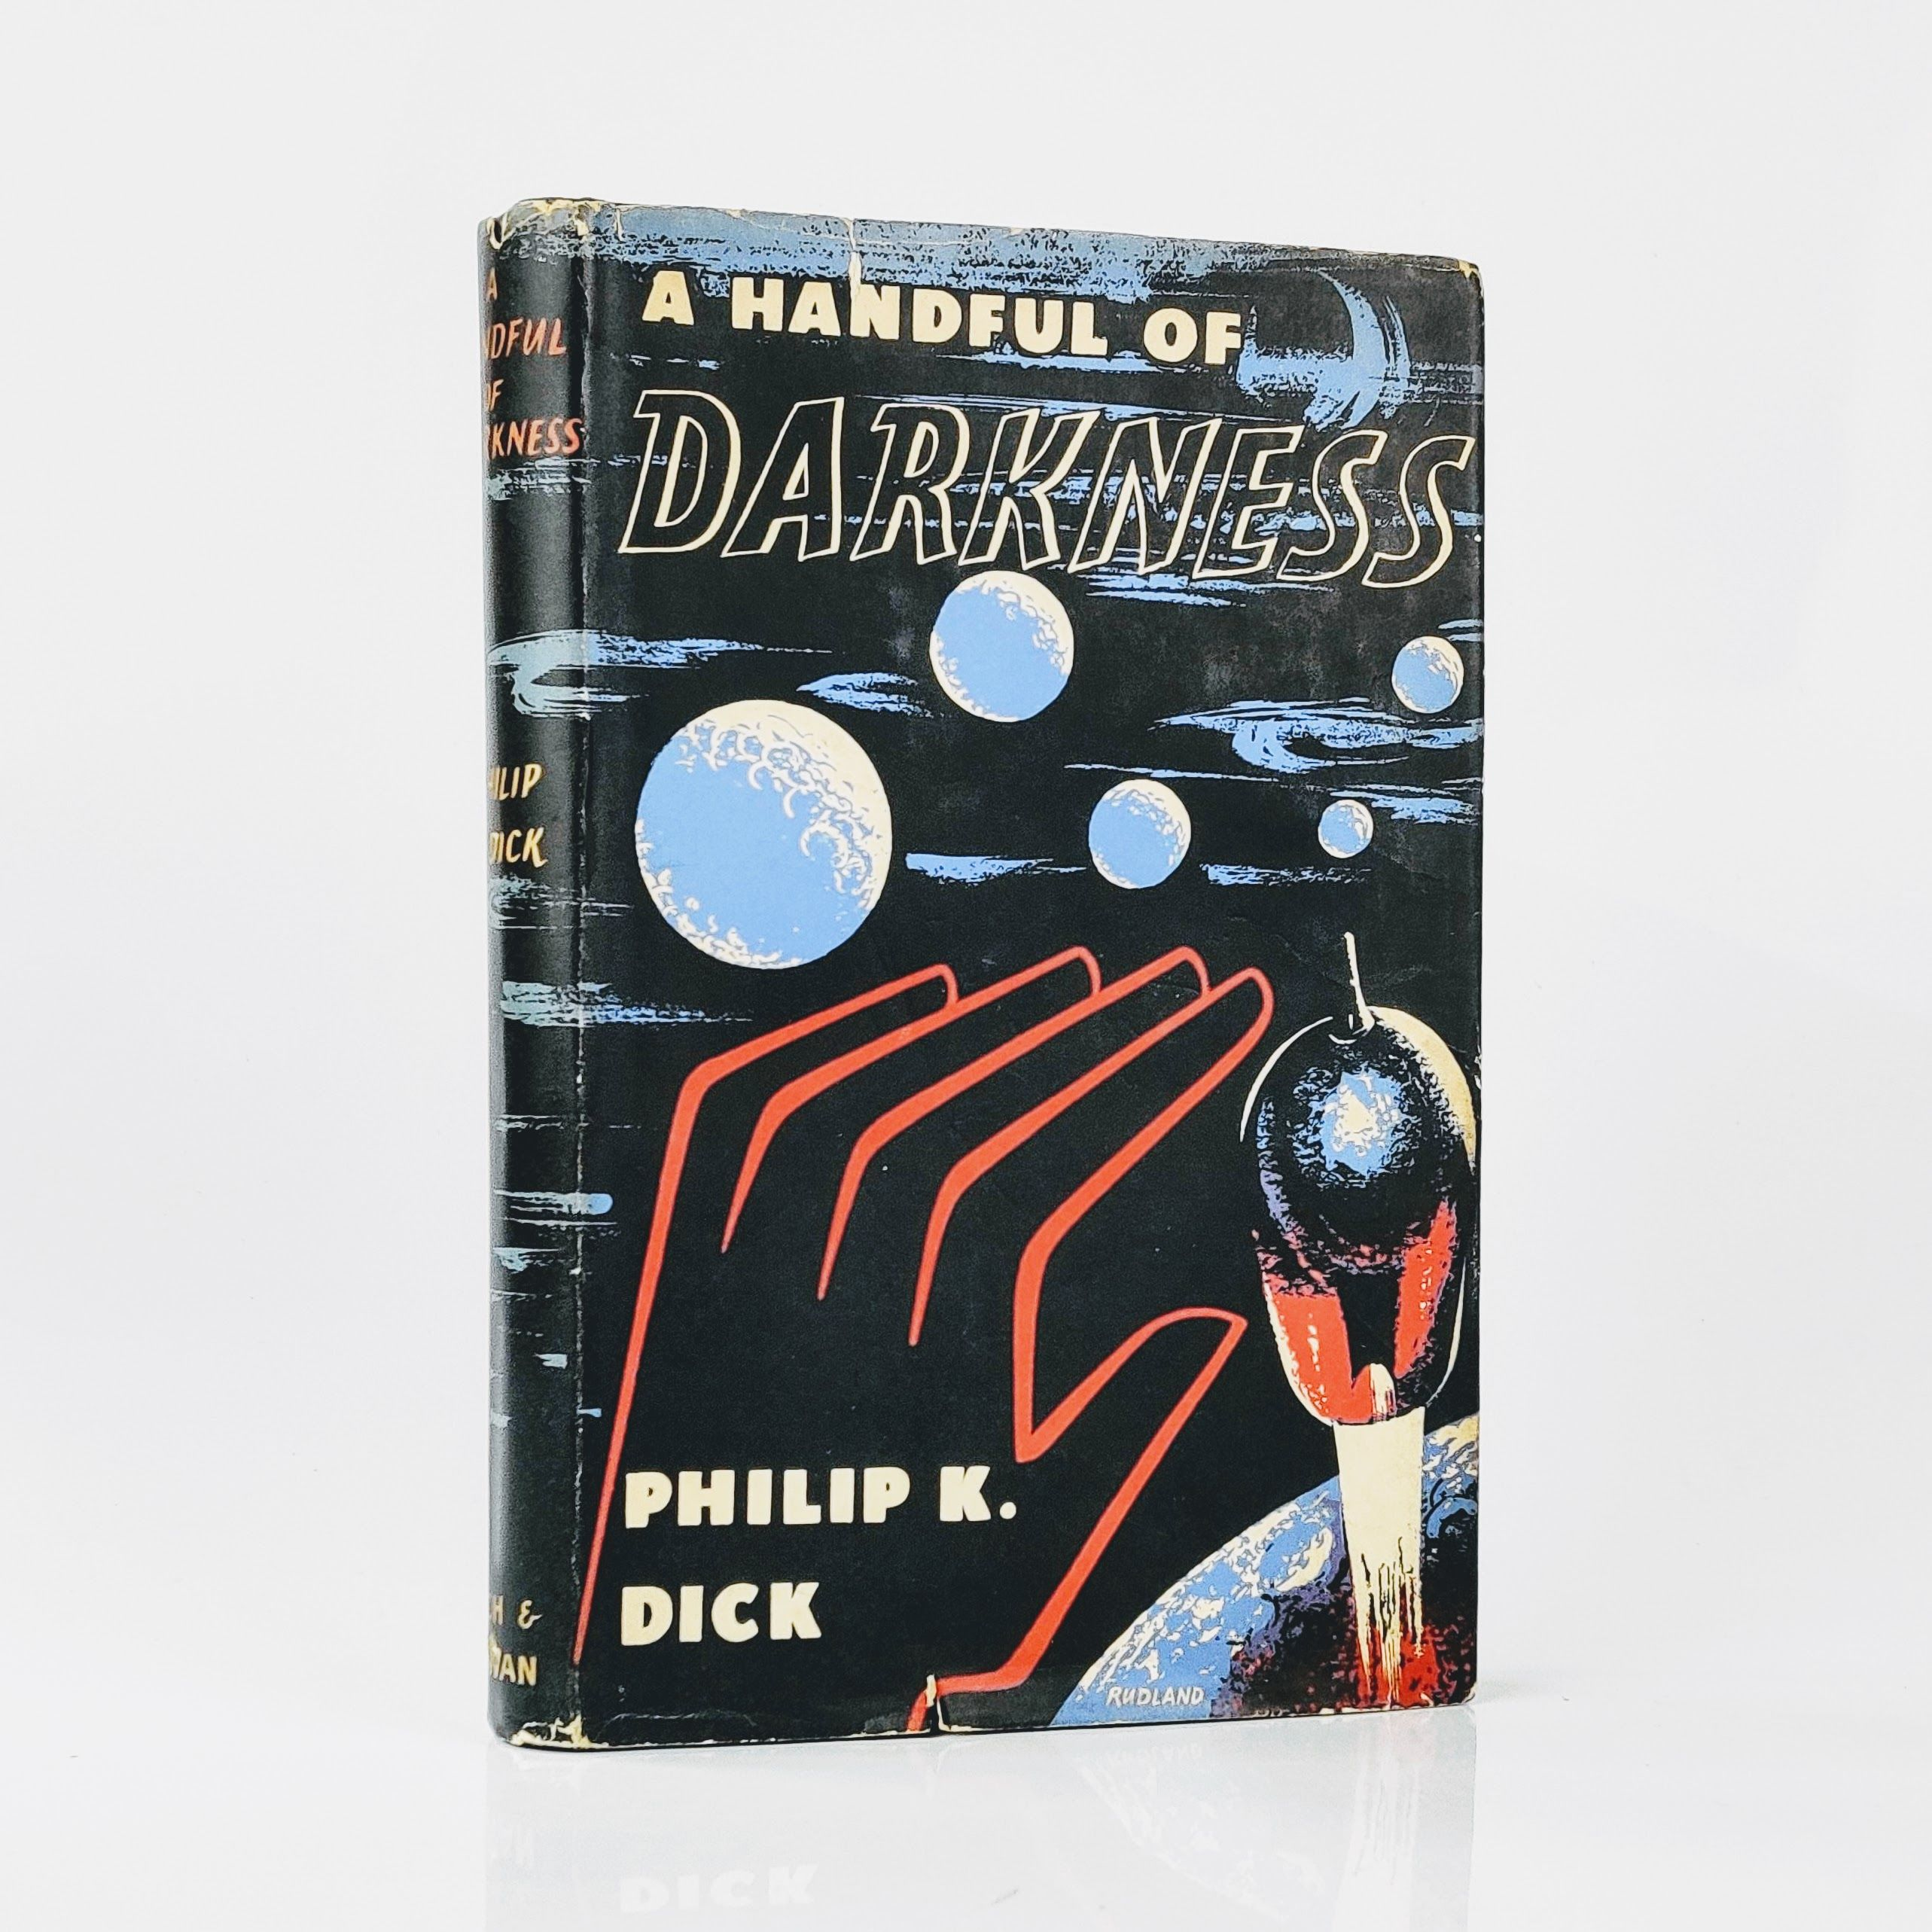 A Handful of Darkness (photo 1)